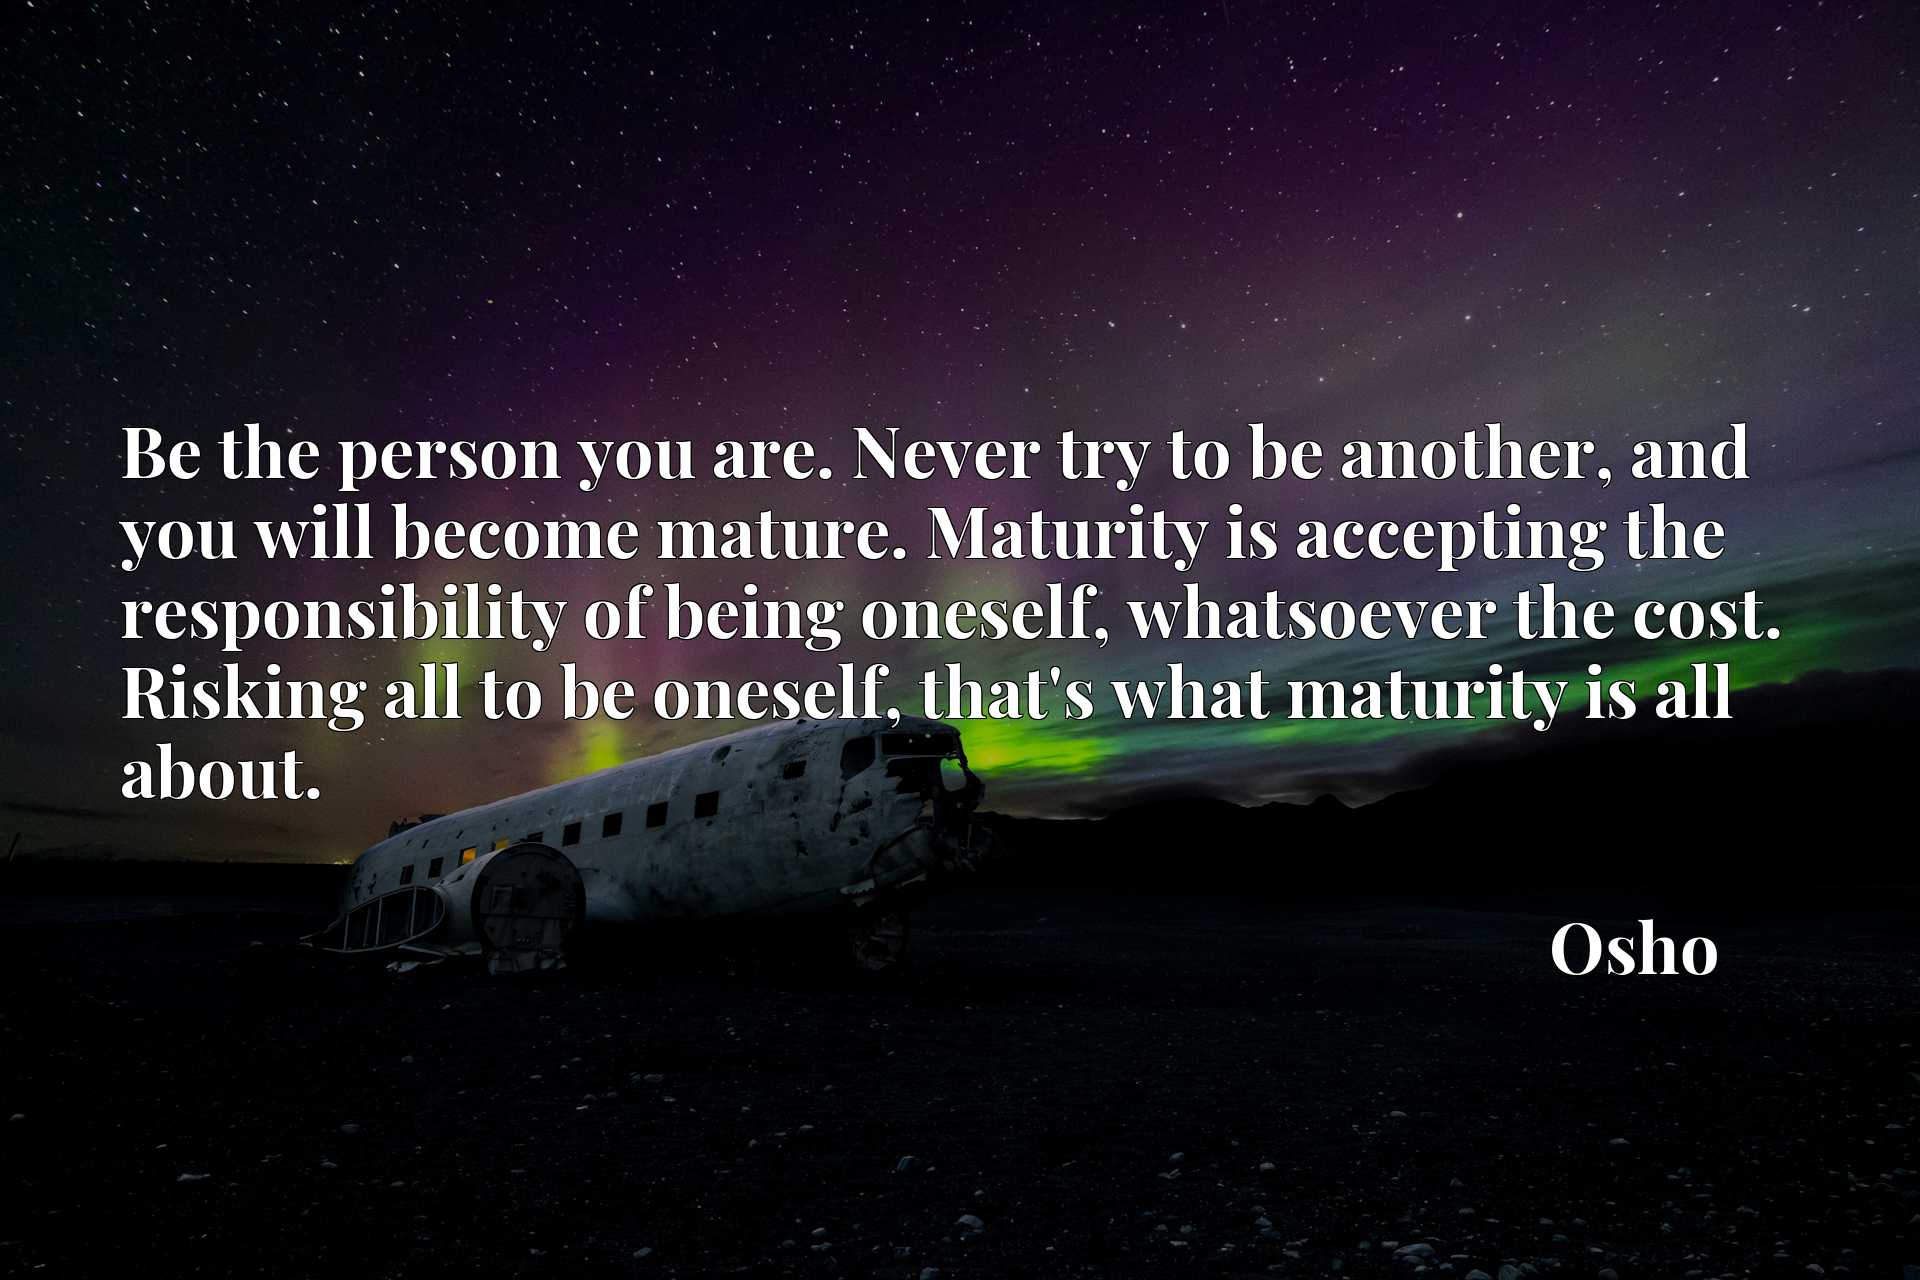 Be the person you are. Never try to be another, and you will become mature. Maturity is accepting the responsibility of being oneself, whatsoever the cost. Risking all to be oneself, that's what maturity is all about.